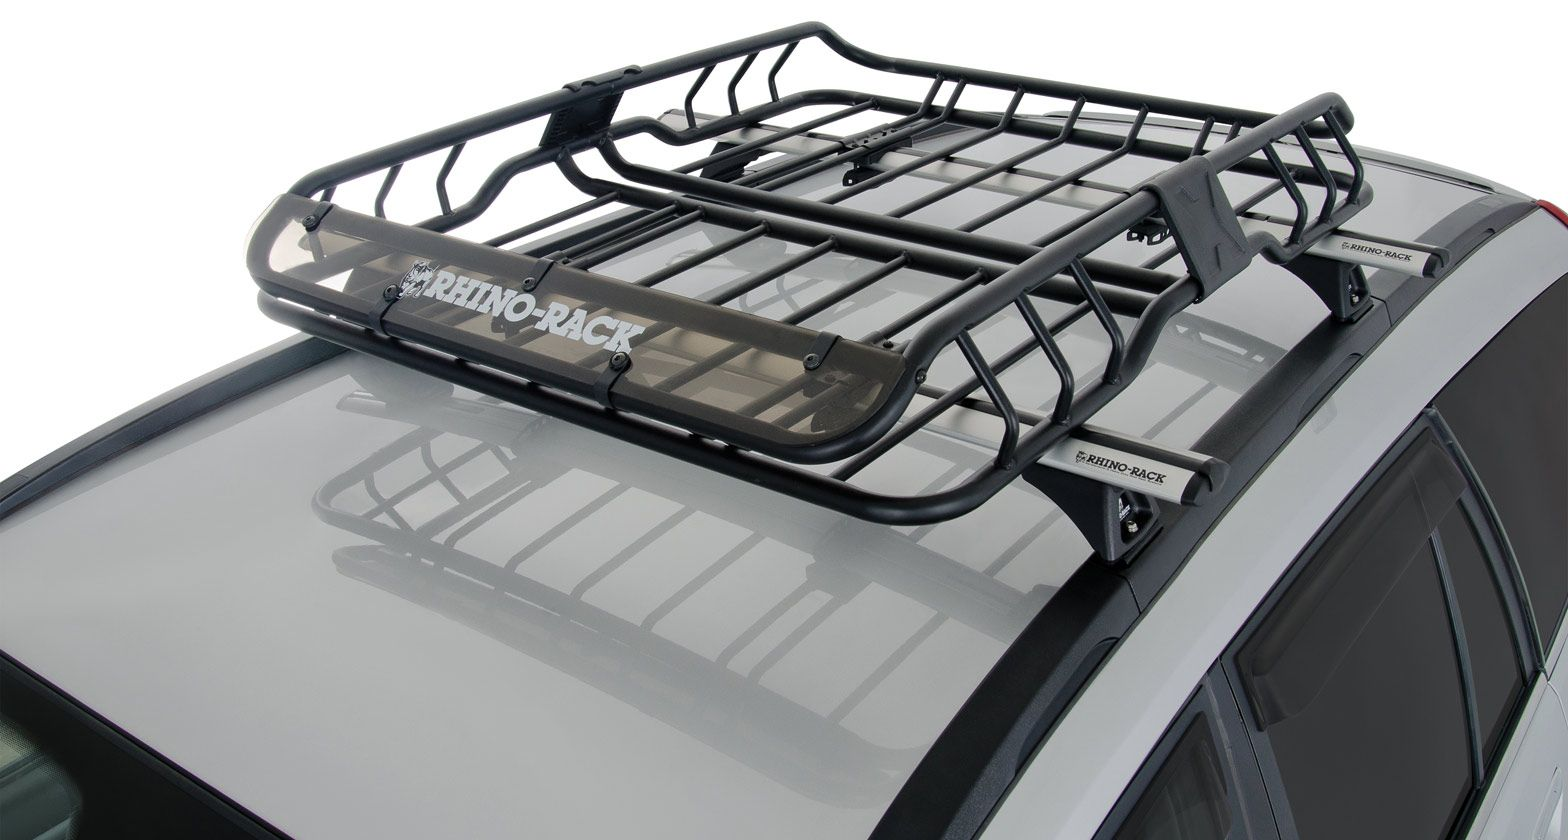 Pin By Chris Pierce On 4x4 In 2020 Cargo Carrier Roof Rack Car Buying